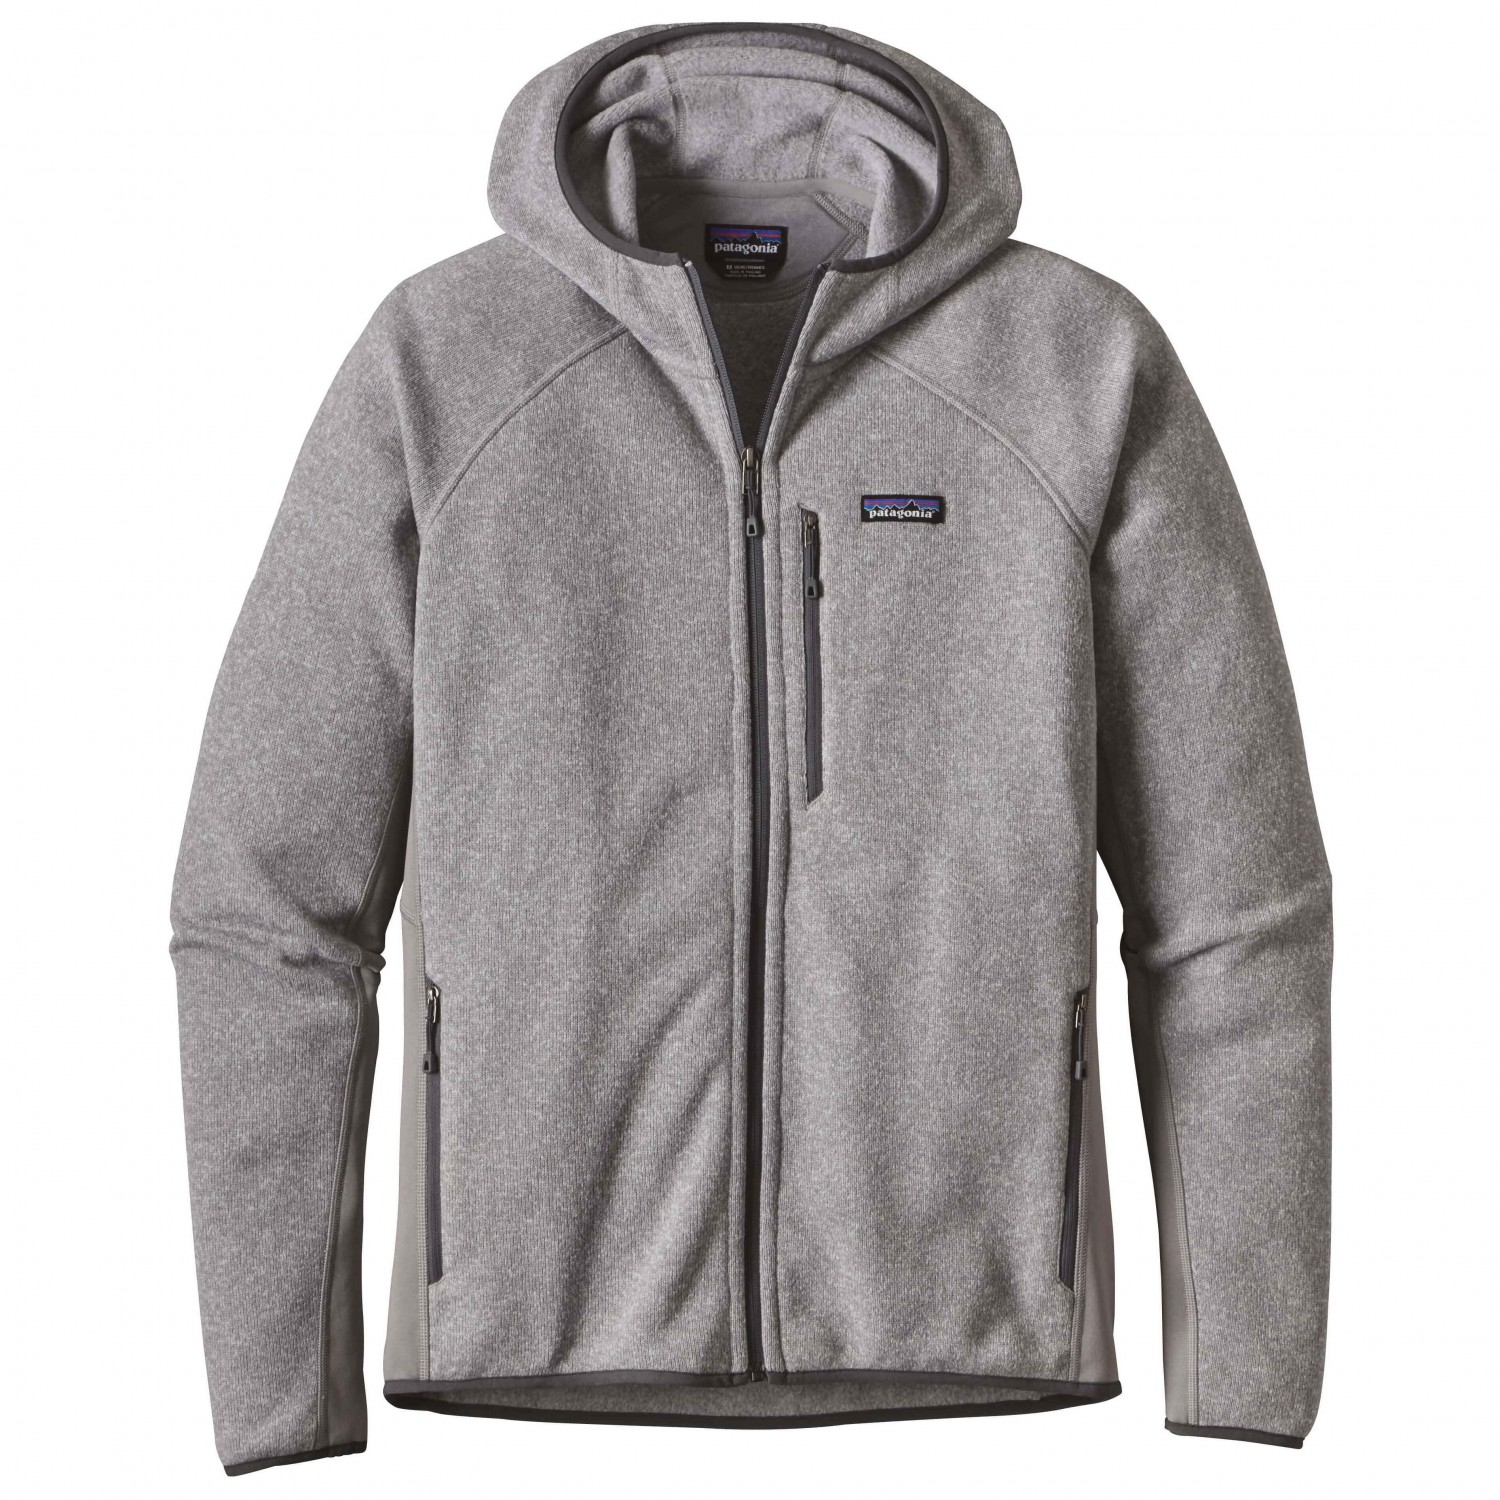 3c9bc20a766 Patagonia Performance Better Sweater Hoody - Fleece Jacket Men s ...